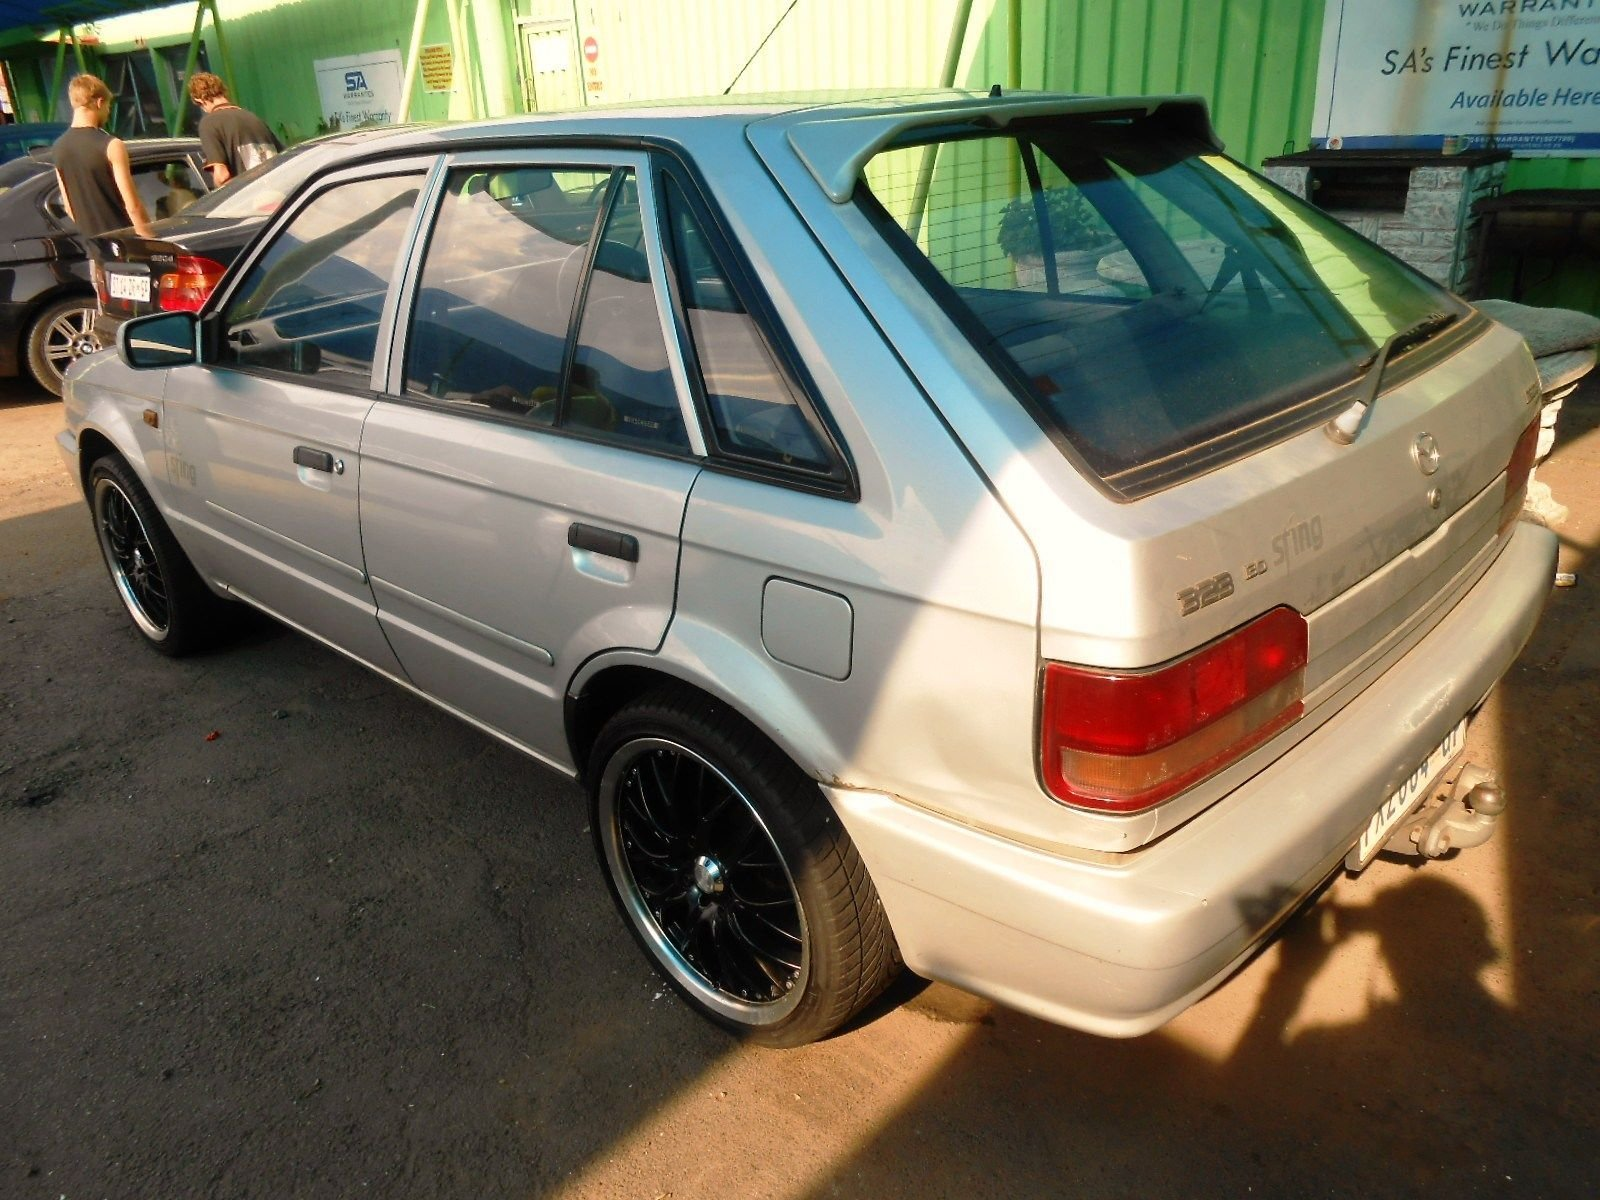 Latest Mazda 323 Fwd 323 130 Sting Sedan For Sale In Roodepoort Free Download